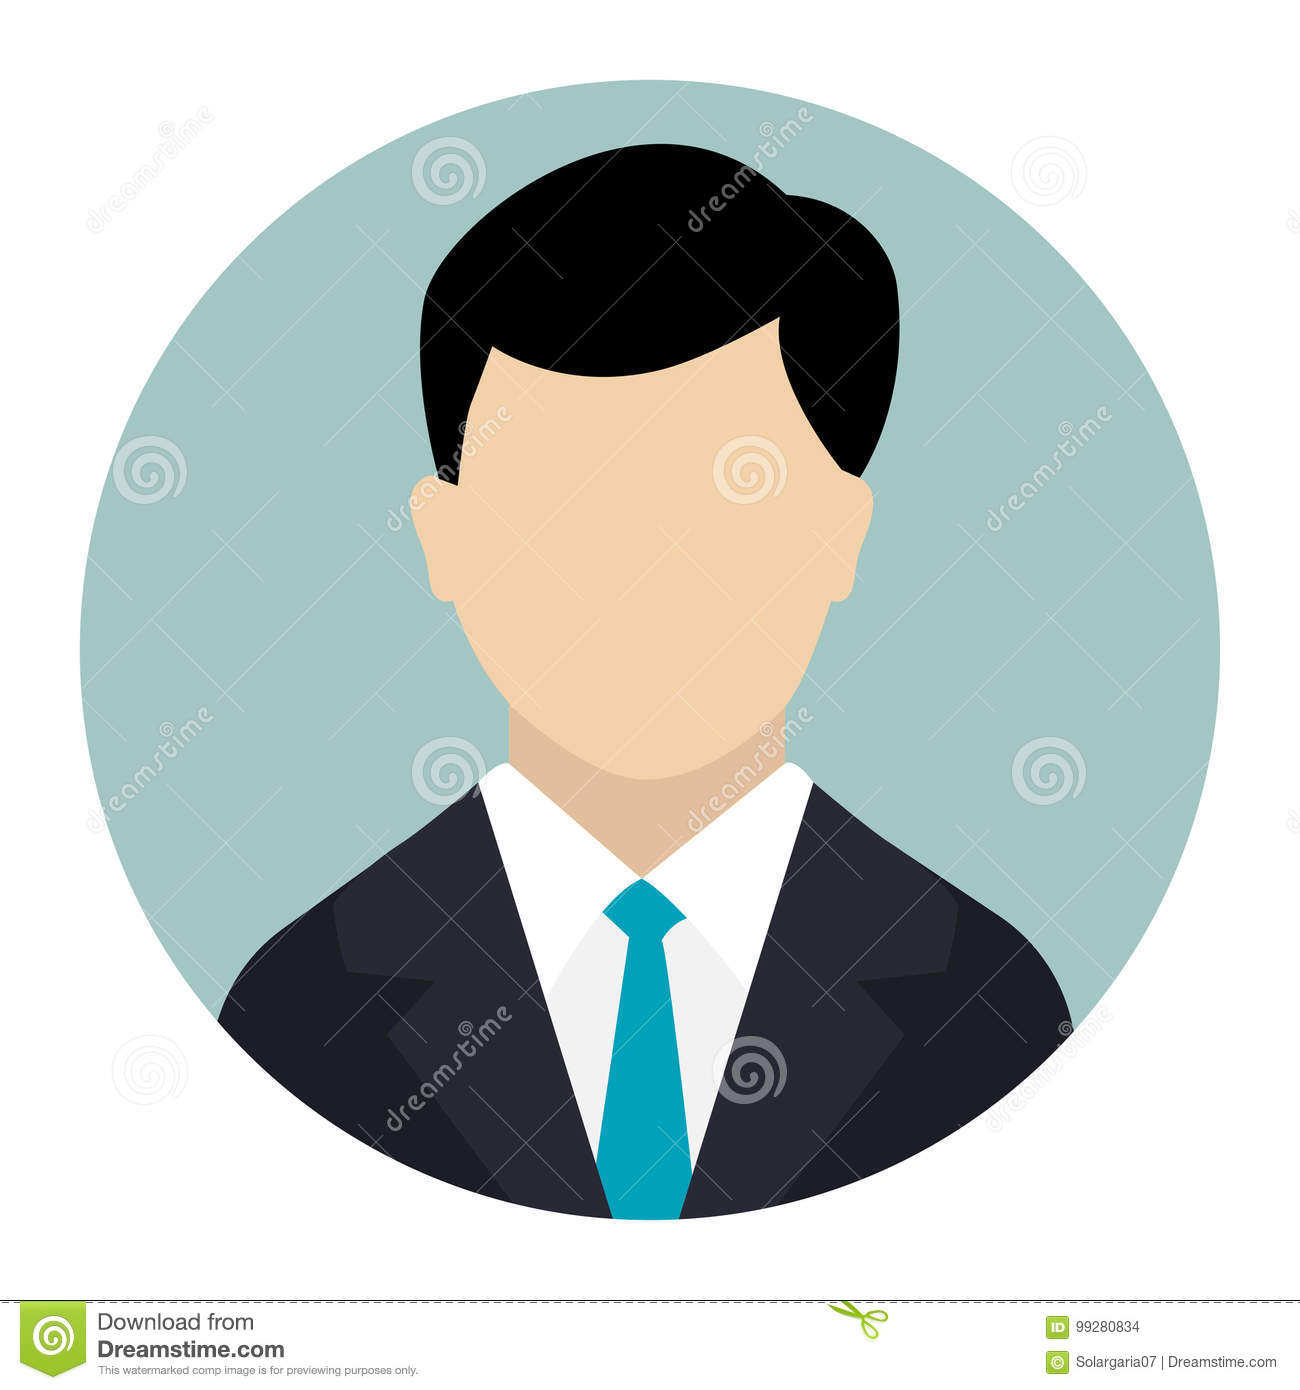 User Icon, Male Avatar In Business Suit,Vector Flat Design